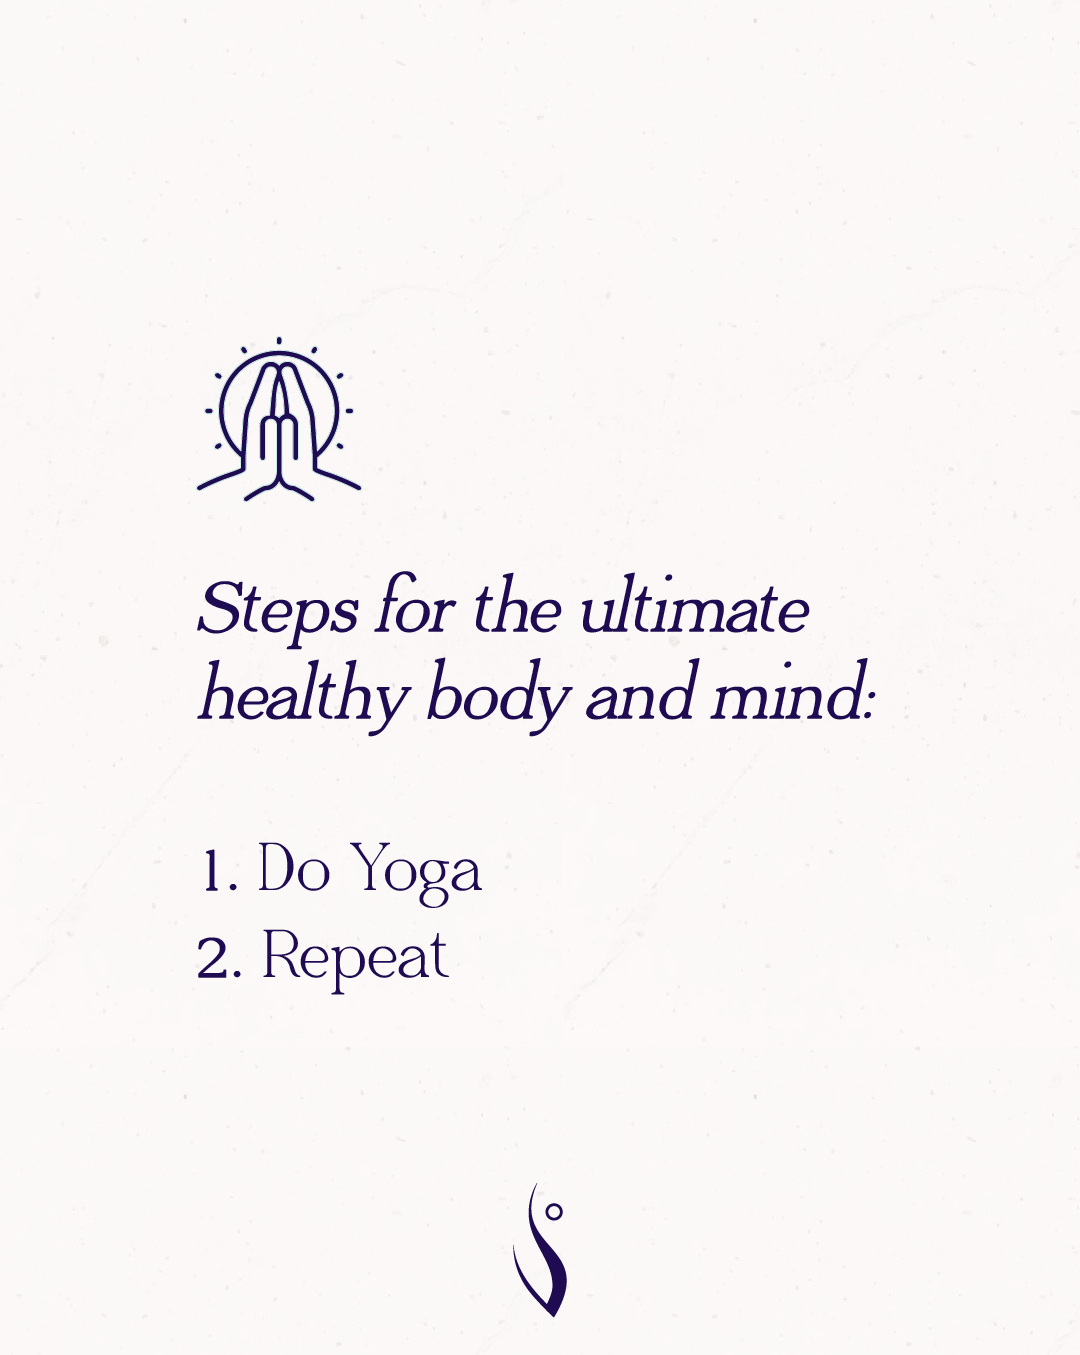 Funny Yoga Quote The Ultimate Healthy Body And Mind Yoga Quotes Funny Yoga Inspiration Quotes Yoga Quotes